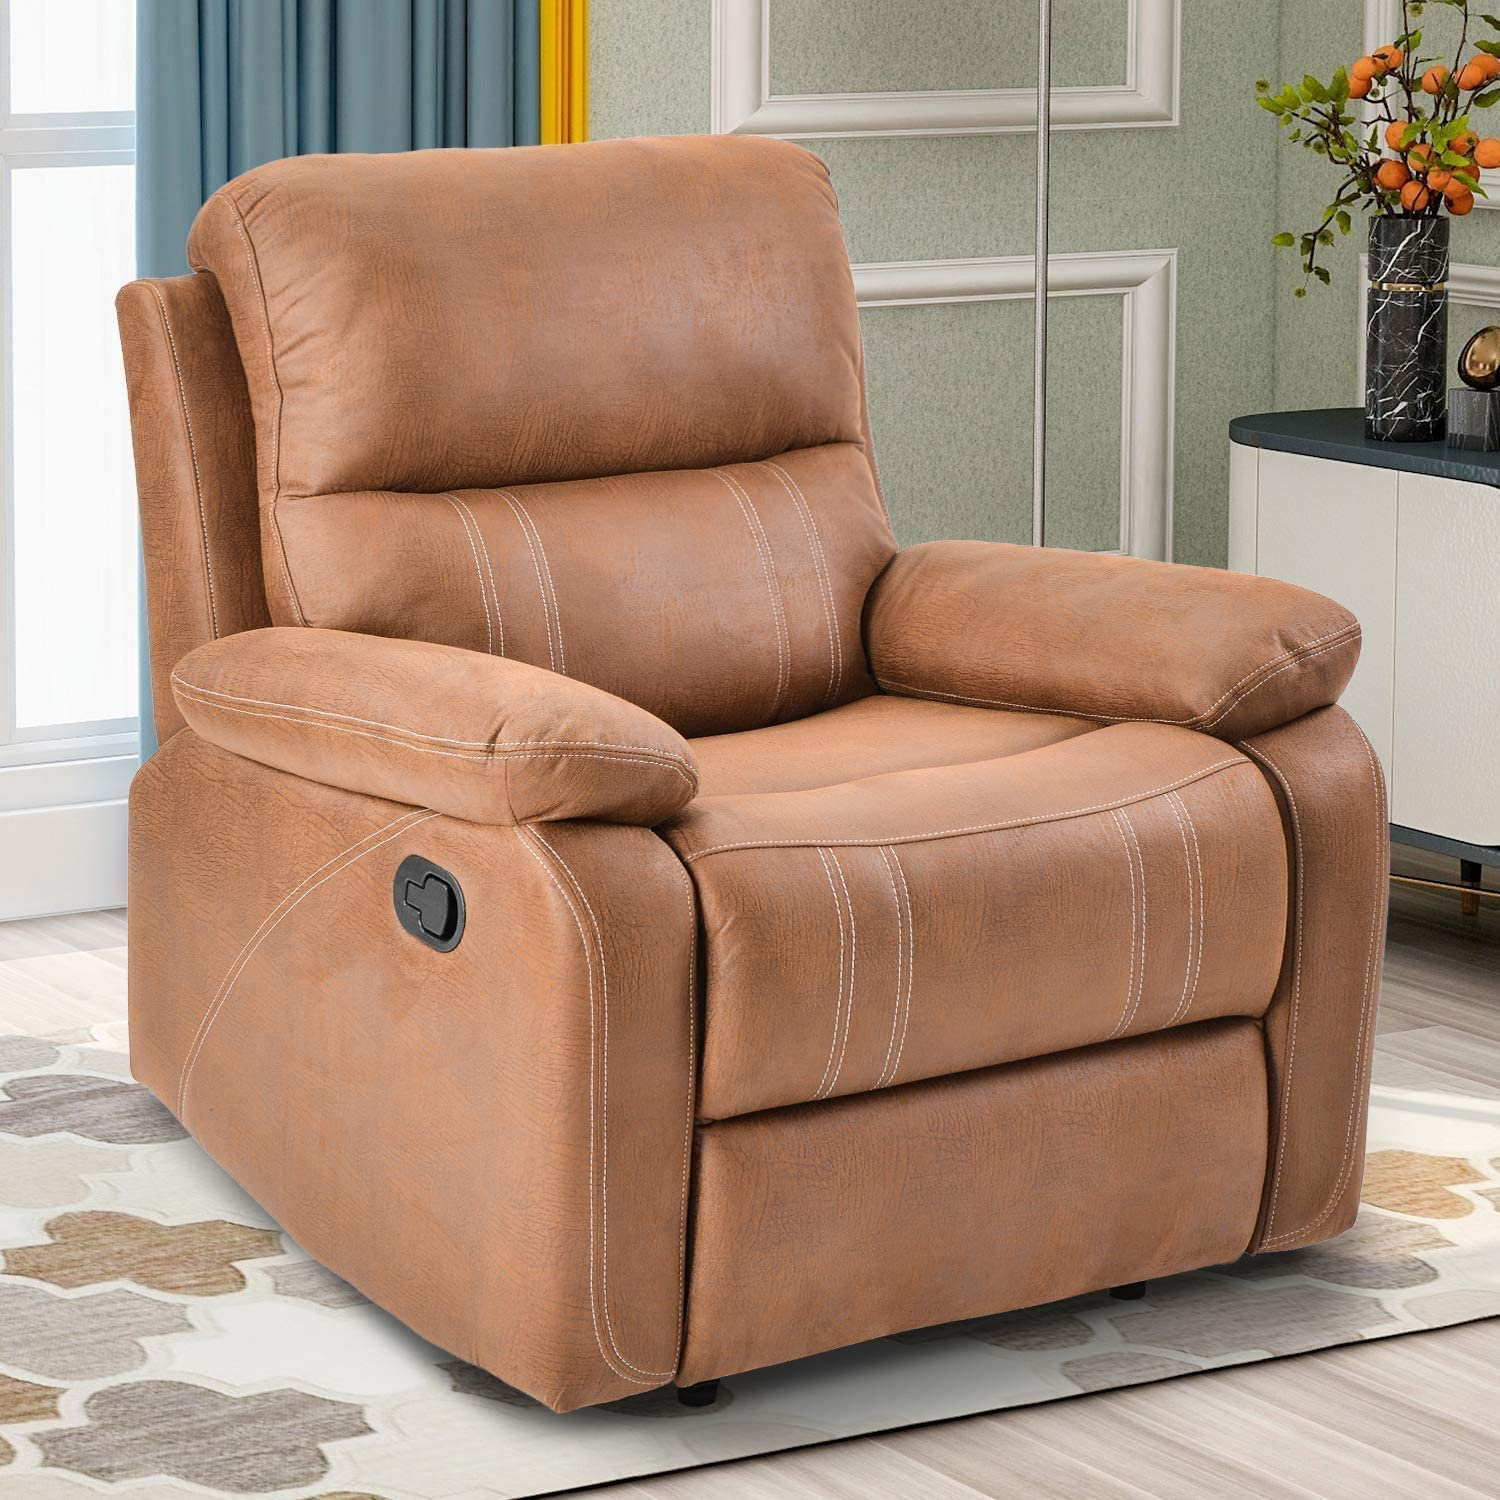 Recliner Chairs Living Room Chair Reclining Sofa Overstuffed Heavy Duty  Recliner for Living Room - Home Theater Seating Faux Suede Leather